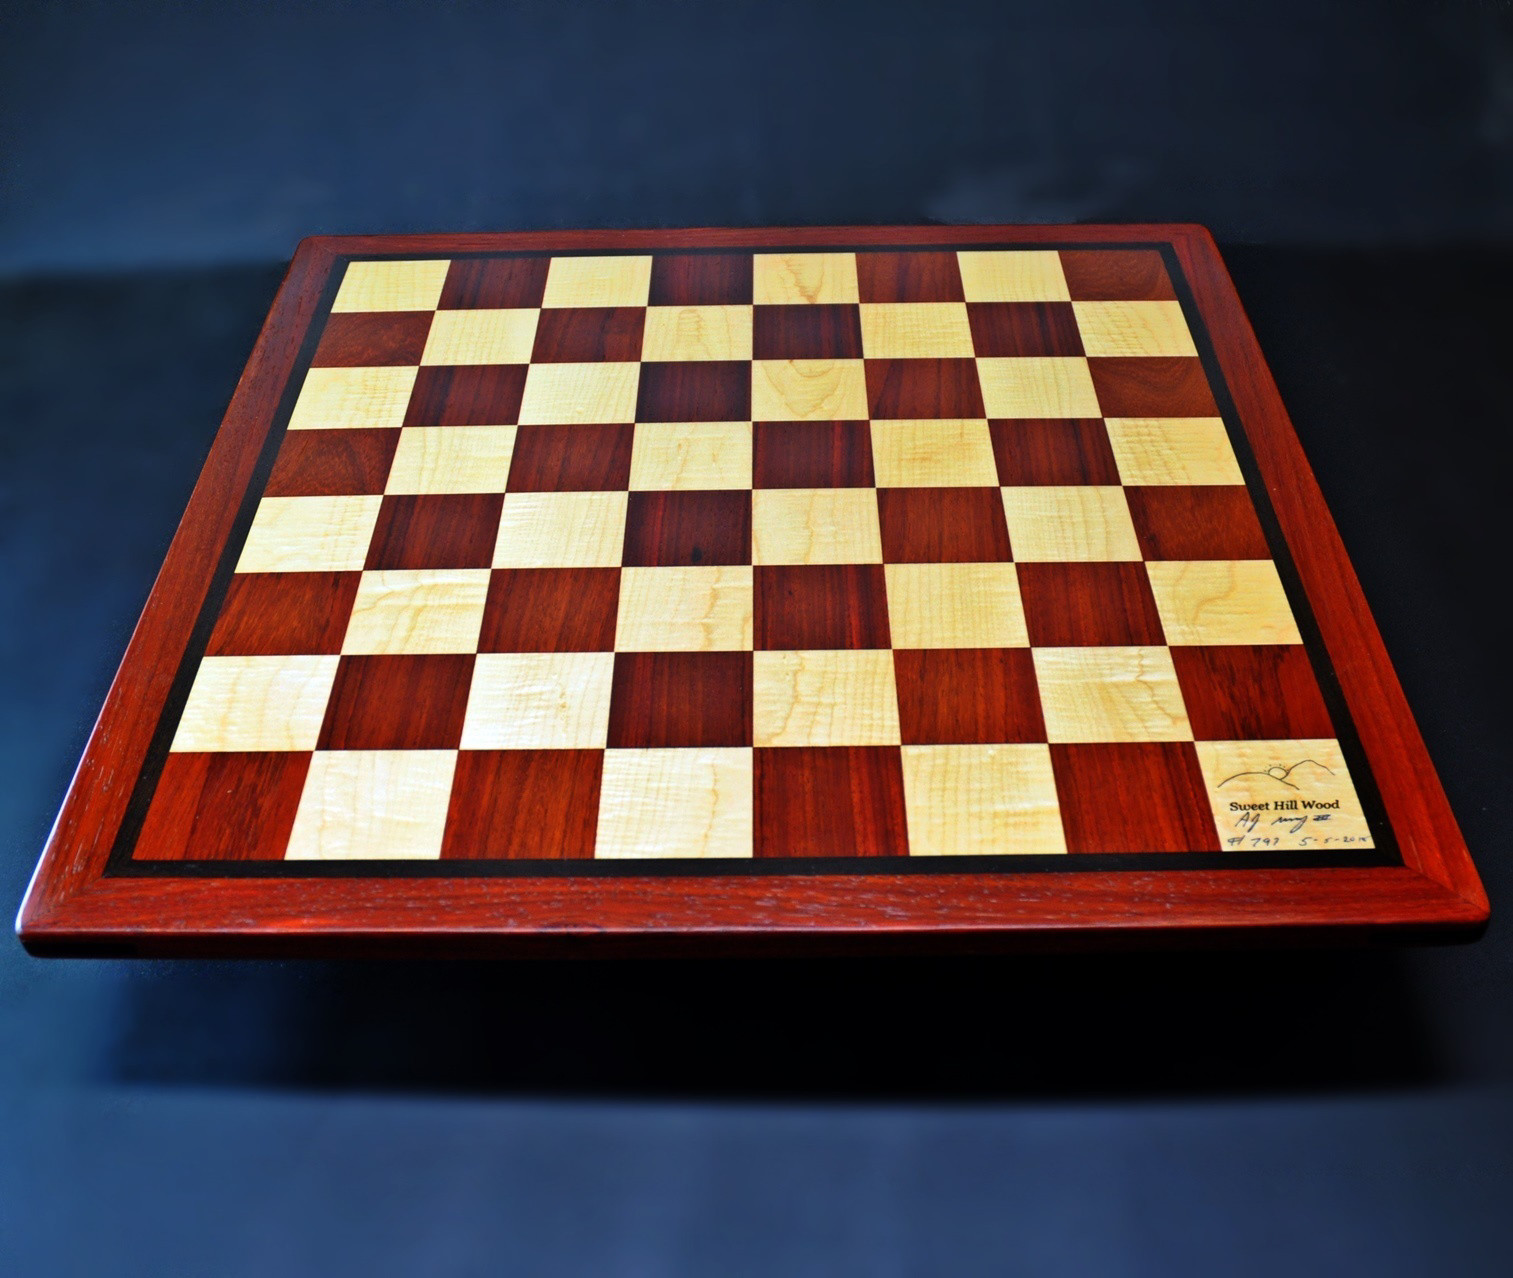 Padauk and Maple Chessboard 3 inch squares and Wenge border image 4